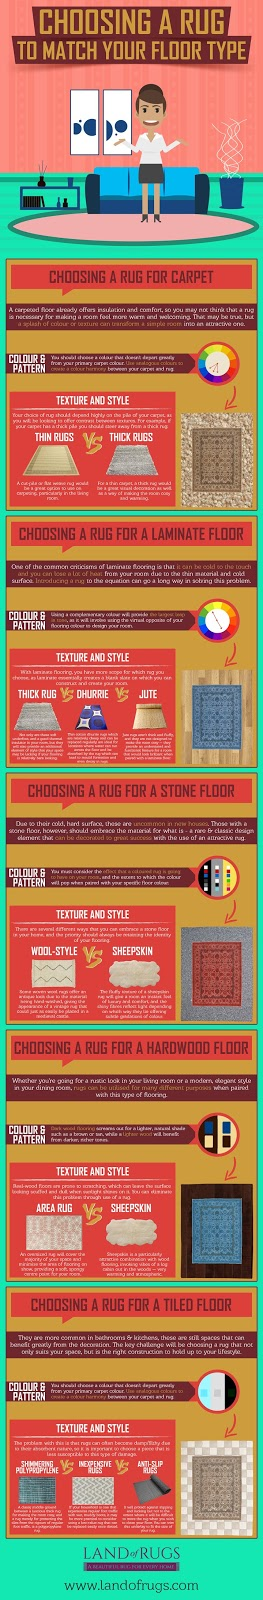 Interior Home Improvement Tips - Adding Rugs